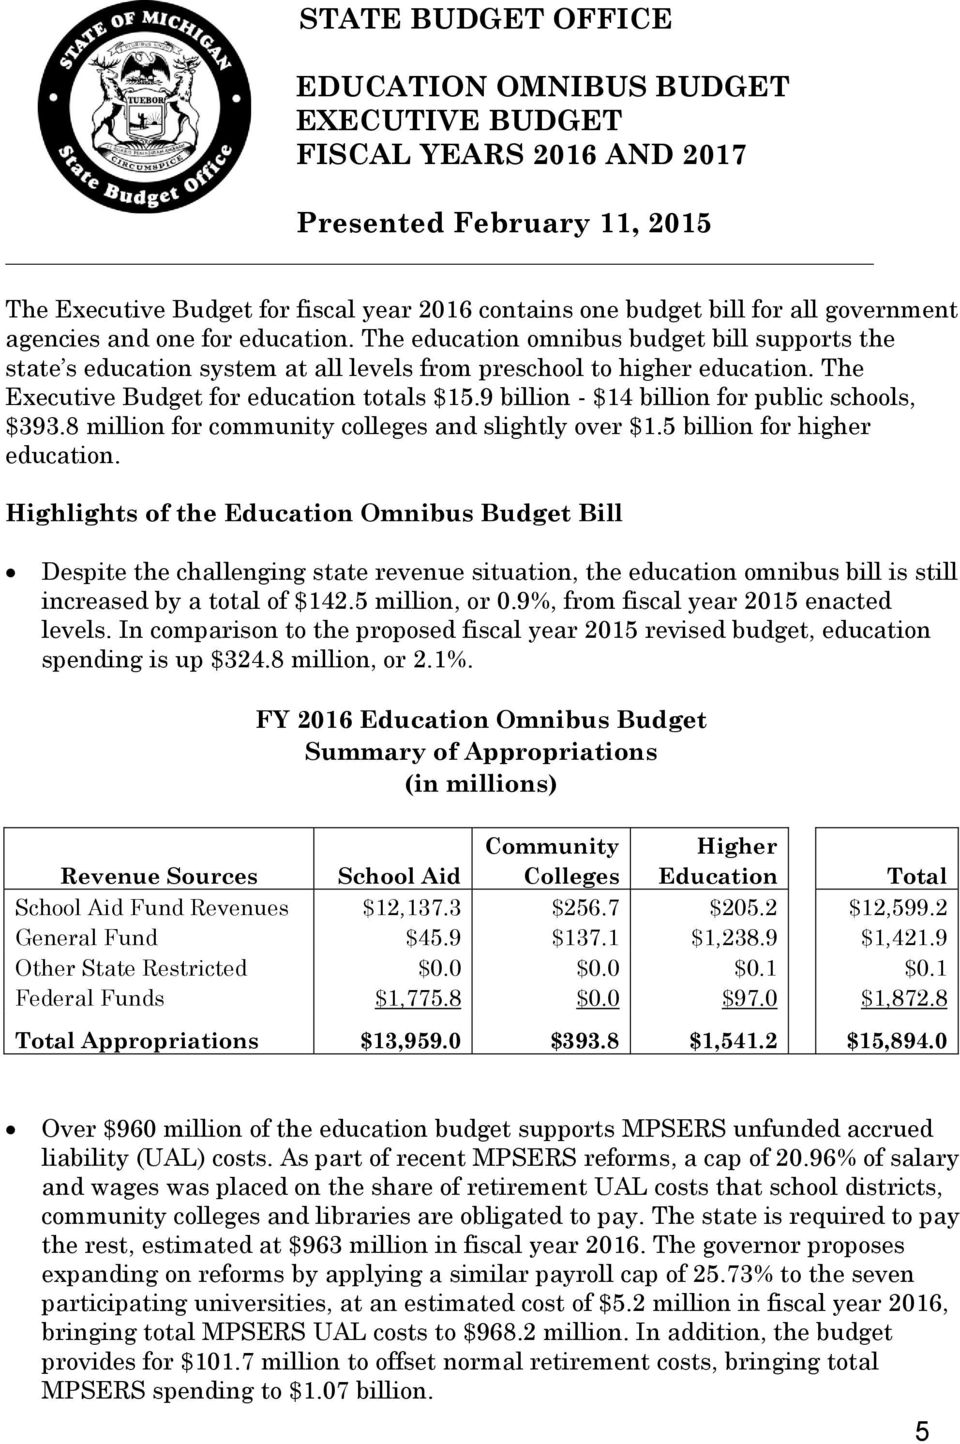 The Executive Budget for education totals $15.9 billion - $14 billion for public schools, $393.8 million for community colleges and slightly over $1.5 billion for higher education.